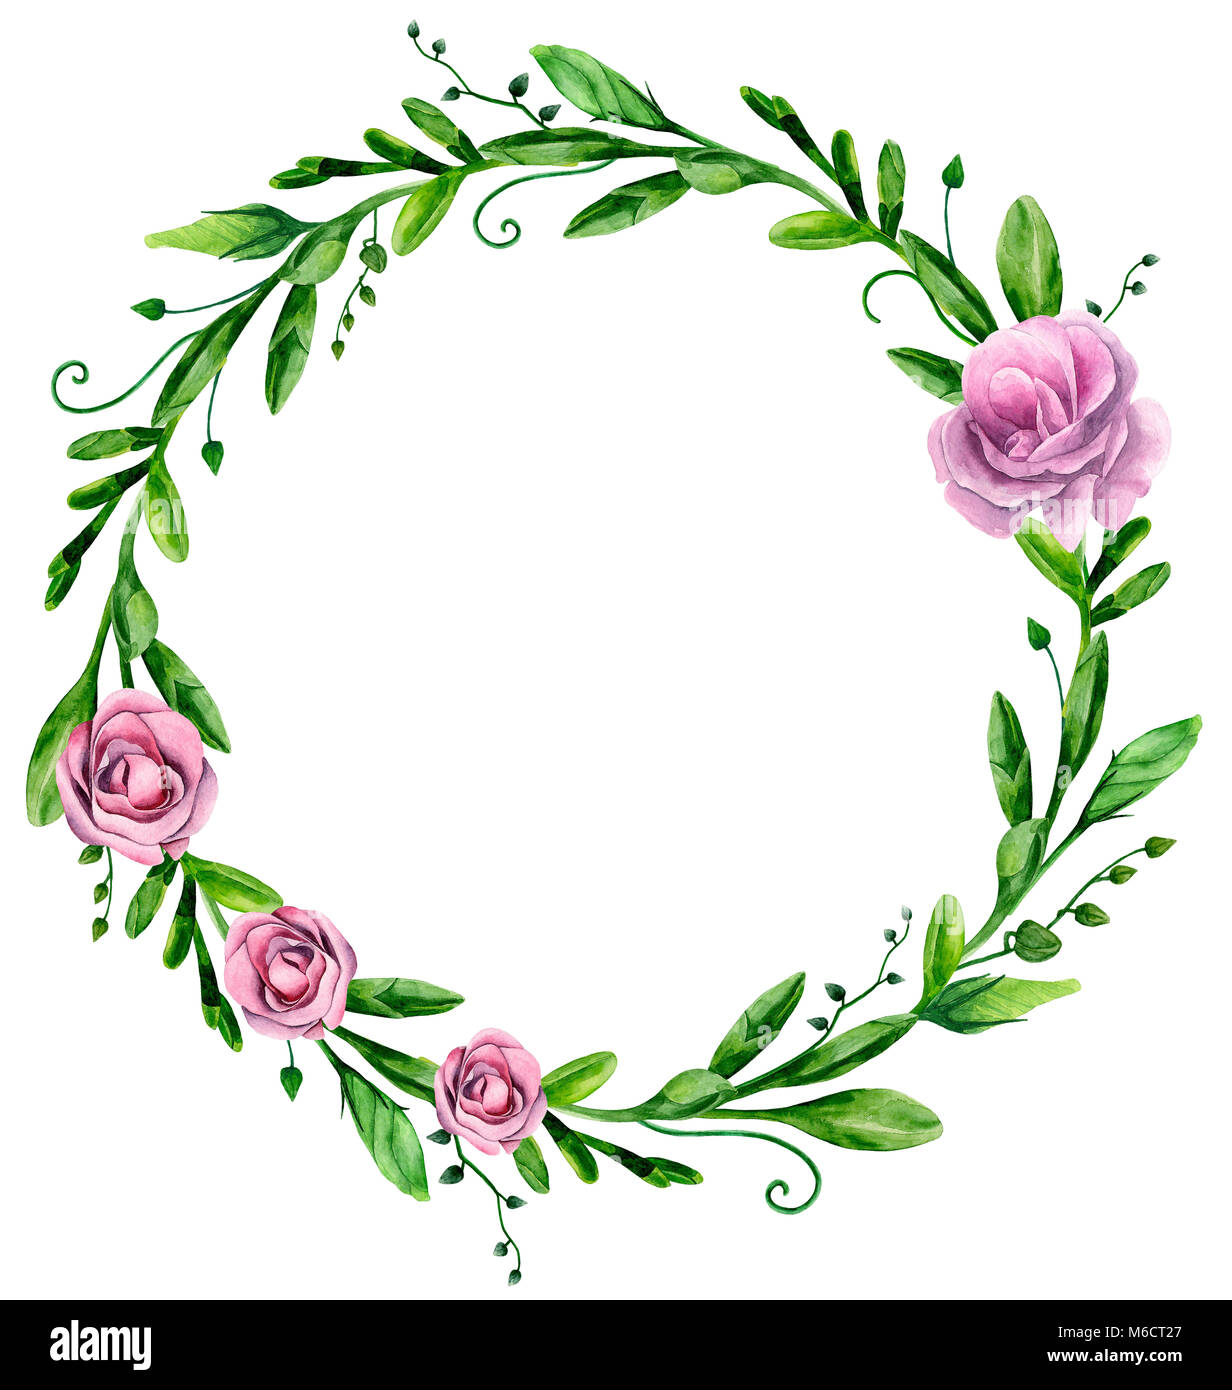 Watercolor greenery wreath with pink flowers. Floral arrangement clip art - Stock Image